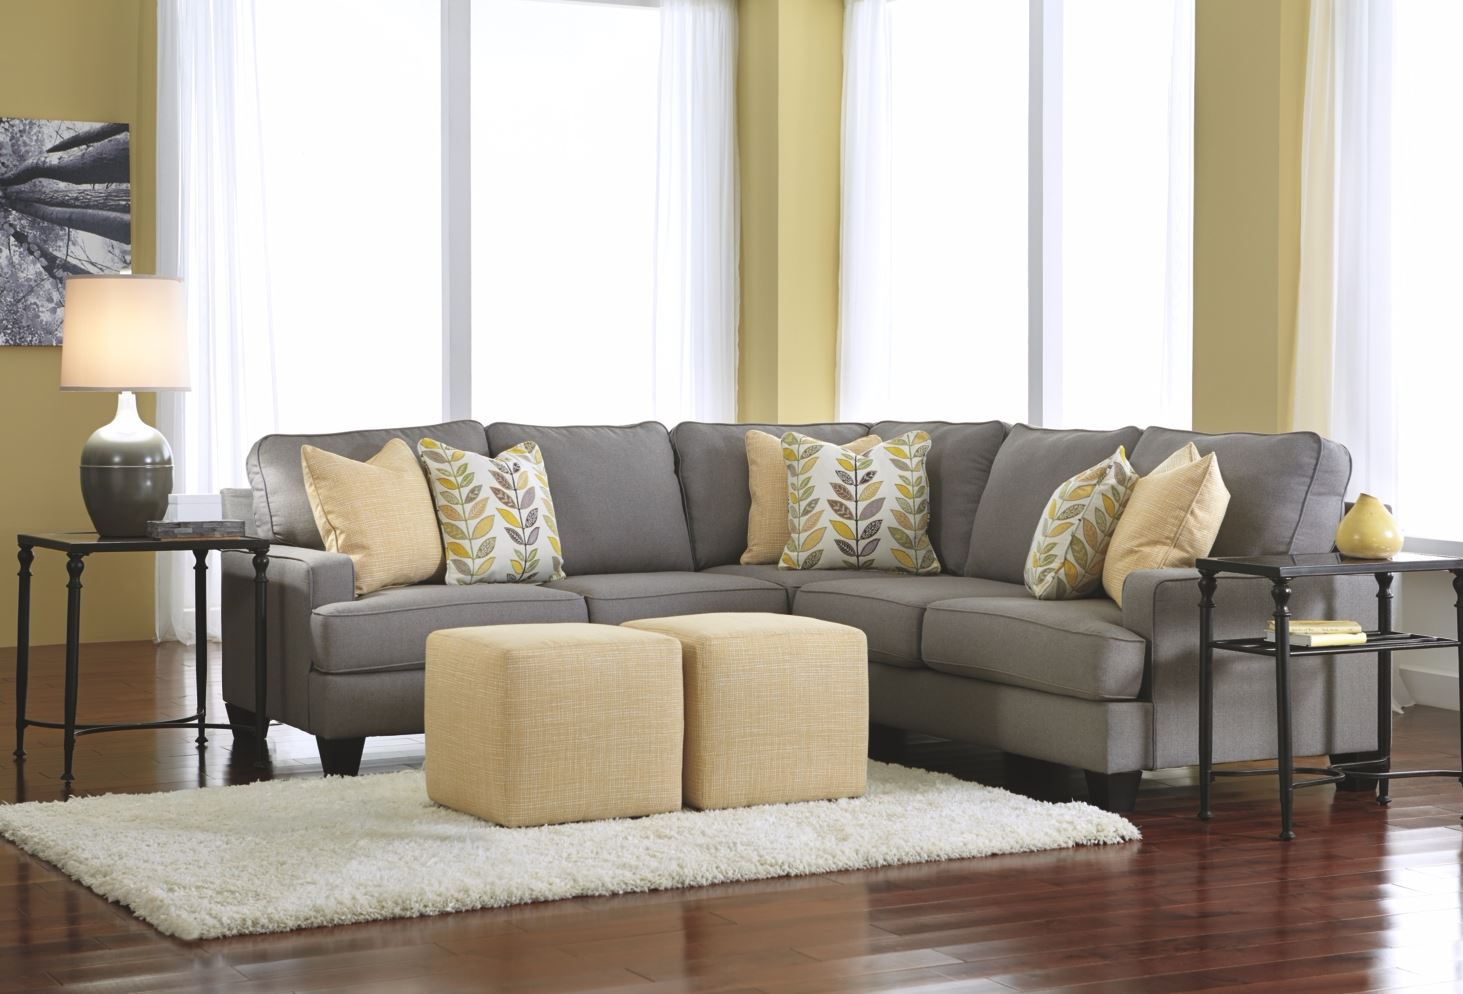 5 Tips For Getting The Sectional Of Your Dreams Ashley Homestore